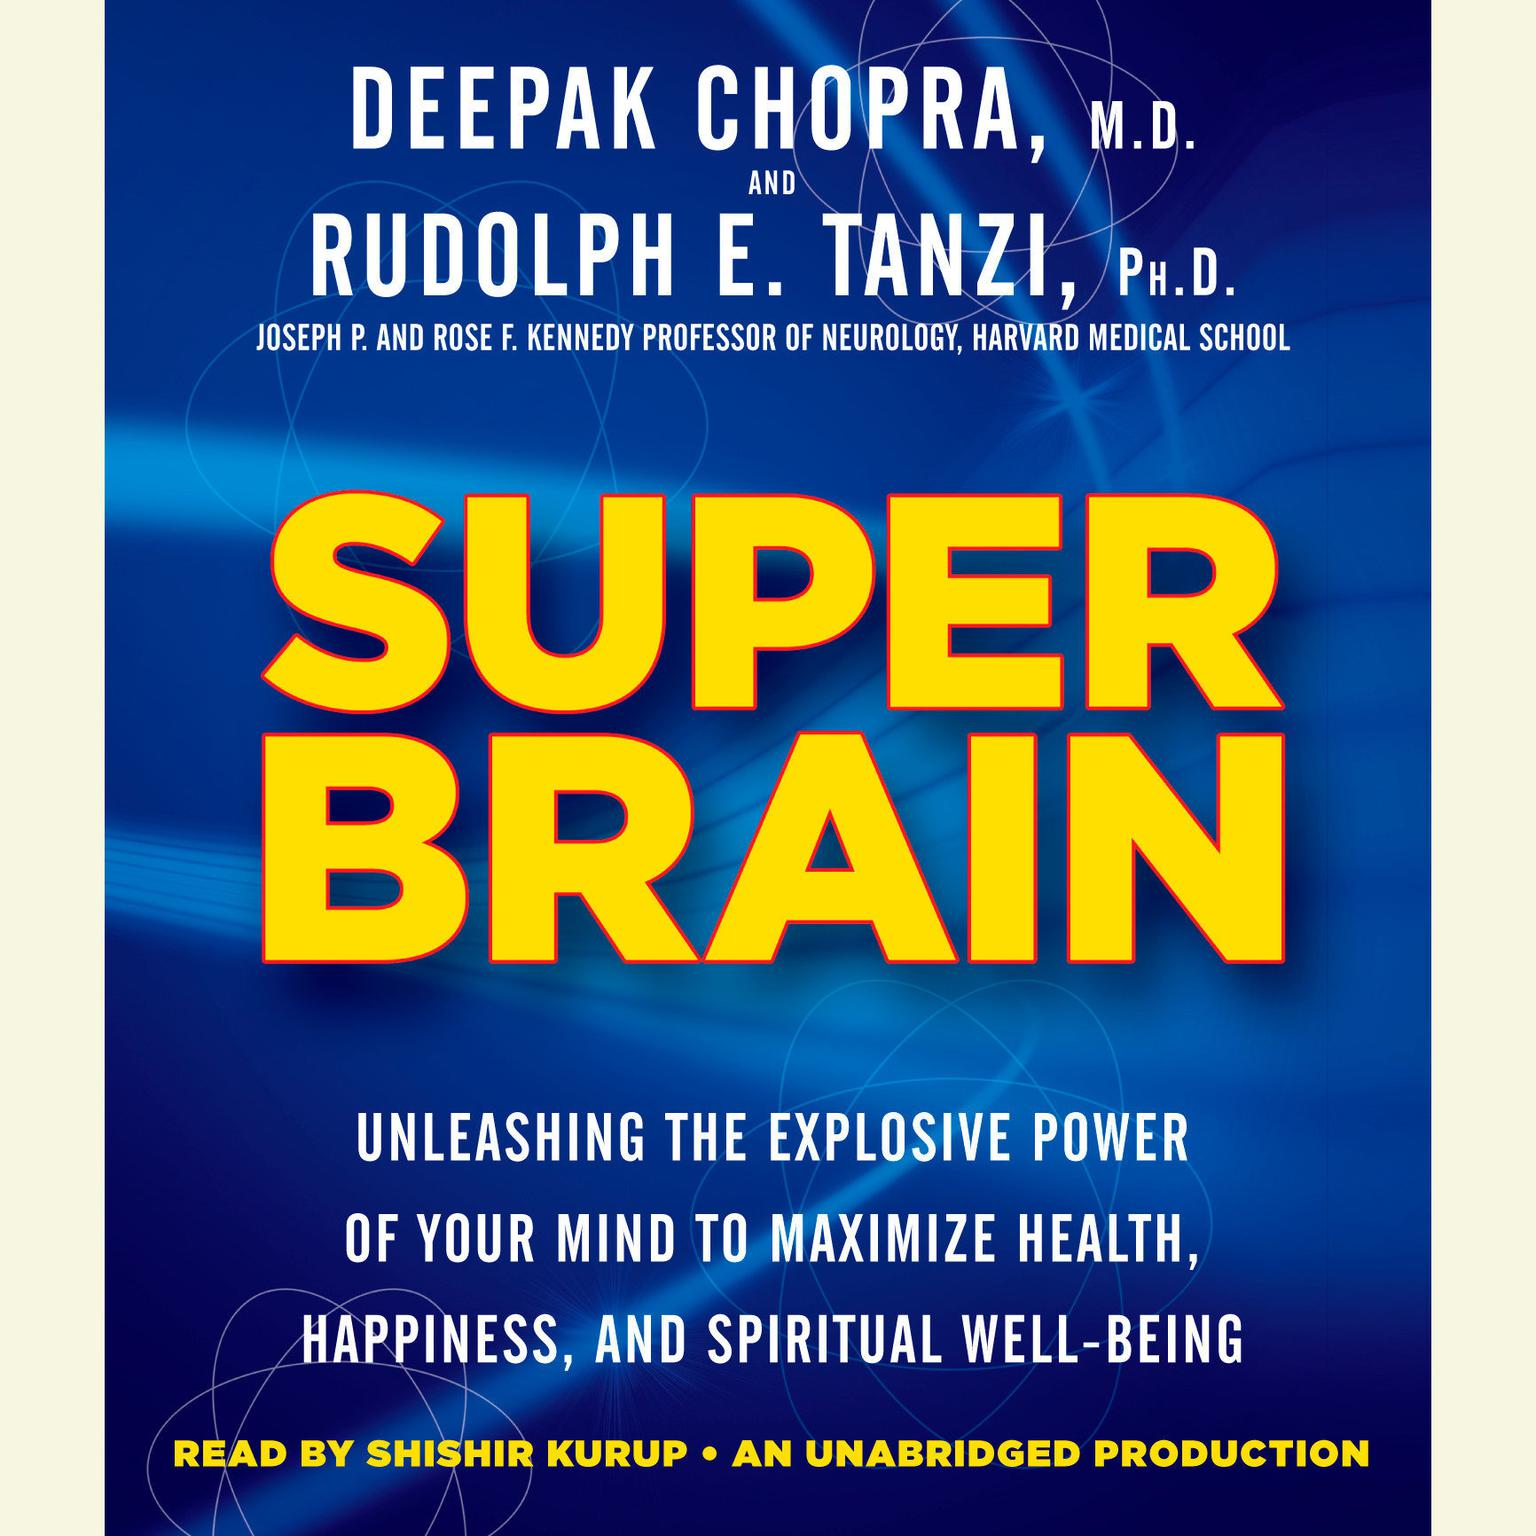 Super Brain: Unleashing the Explosive Power of Your Mind to Maximize Health, Happiness, and Spiritual Well-Being Audiobook, by Rudolph E. Tanzi